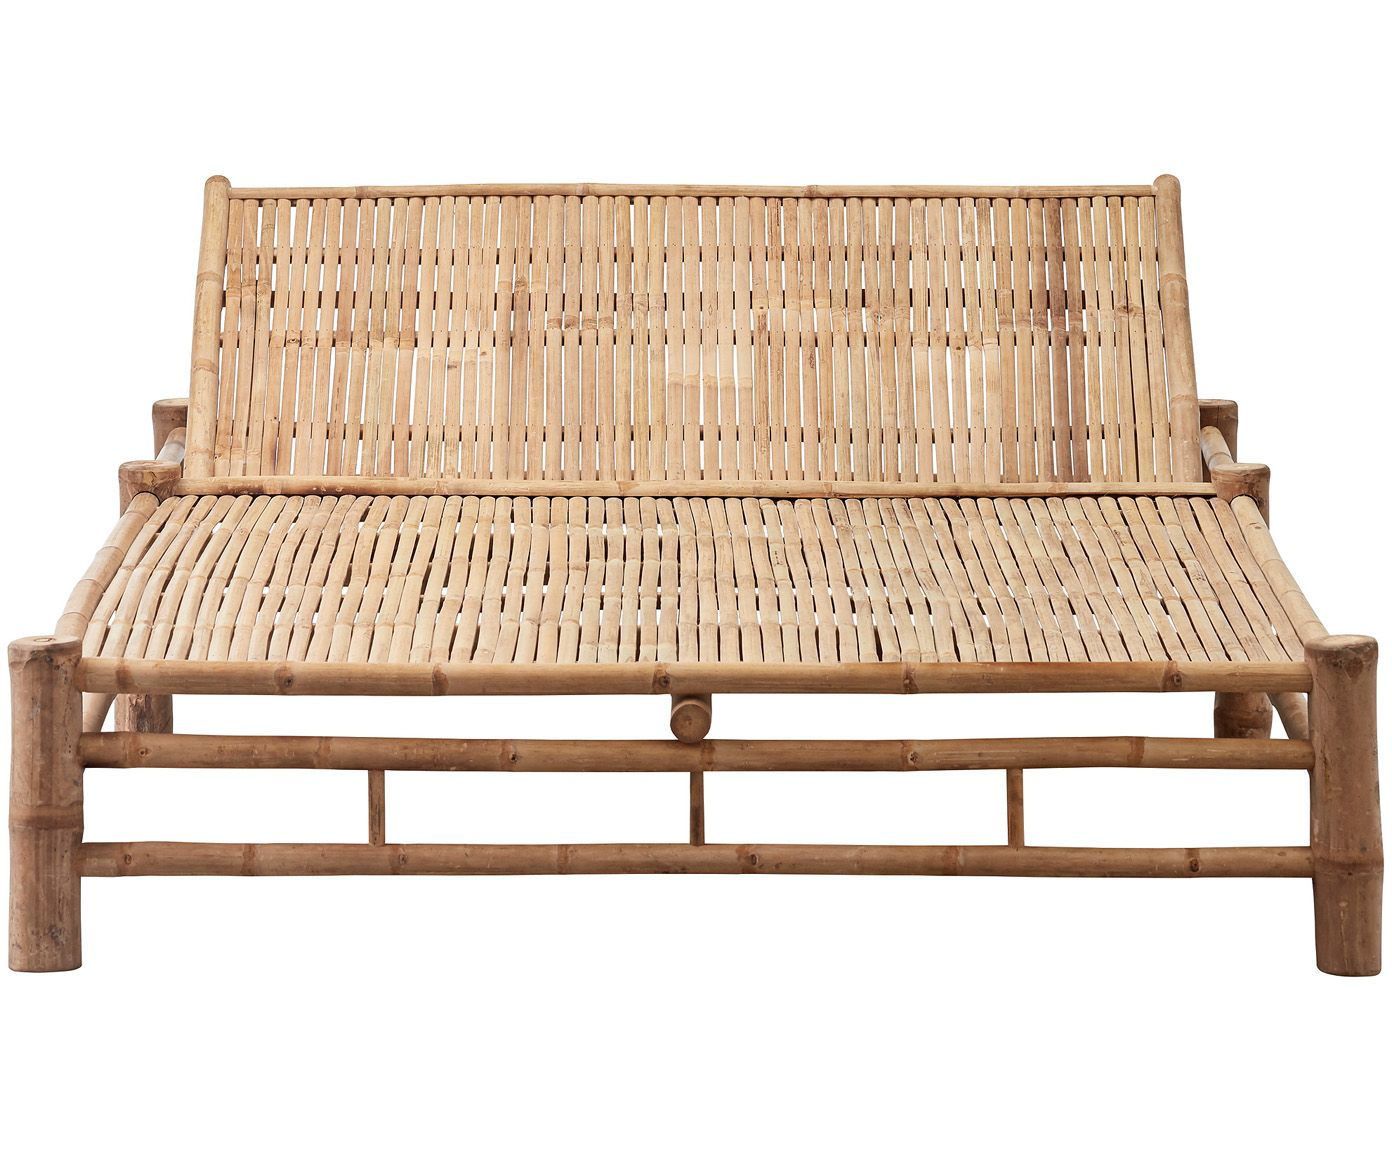 Bambus Daybed Mandisa Interesting Products Bamboo Furniture Sun